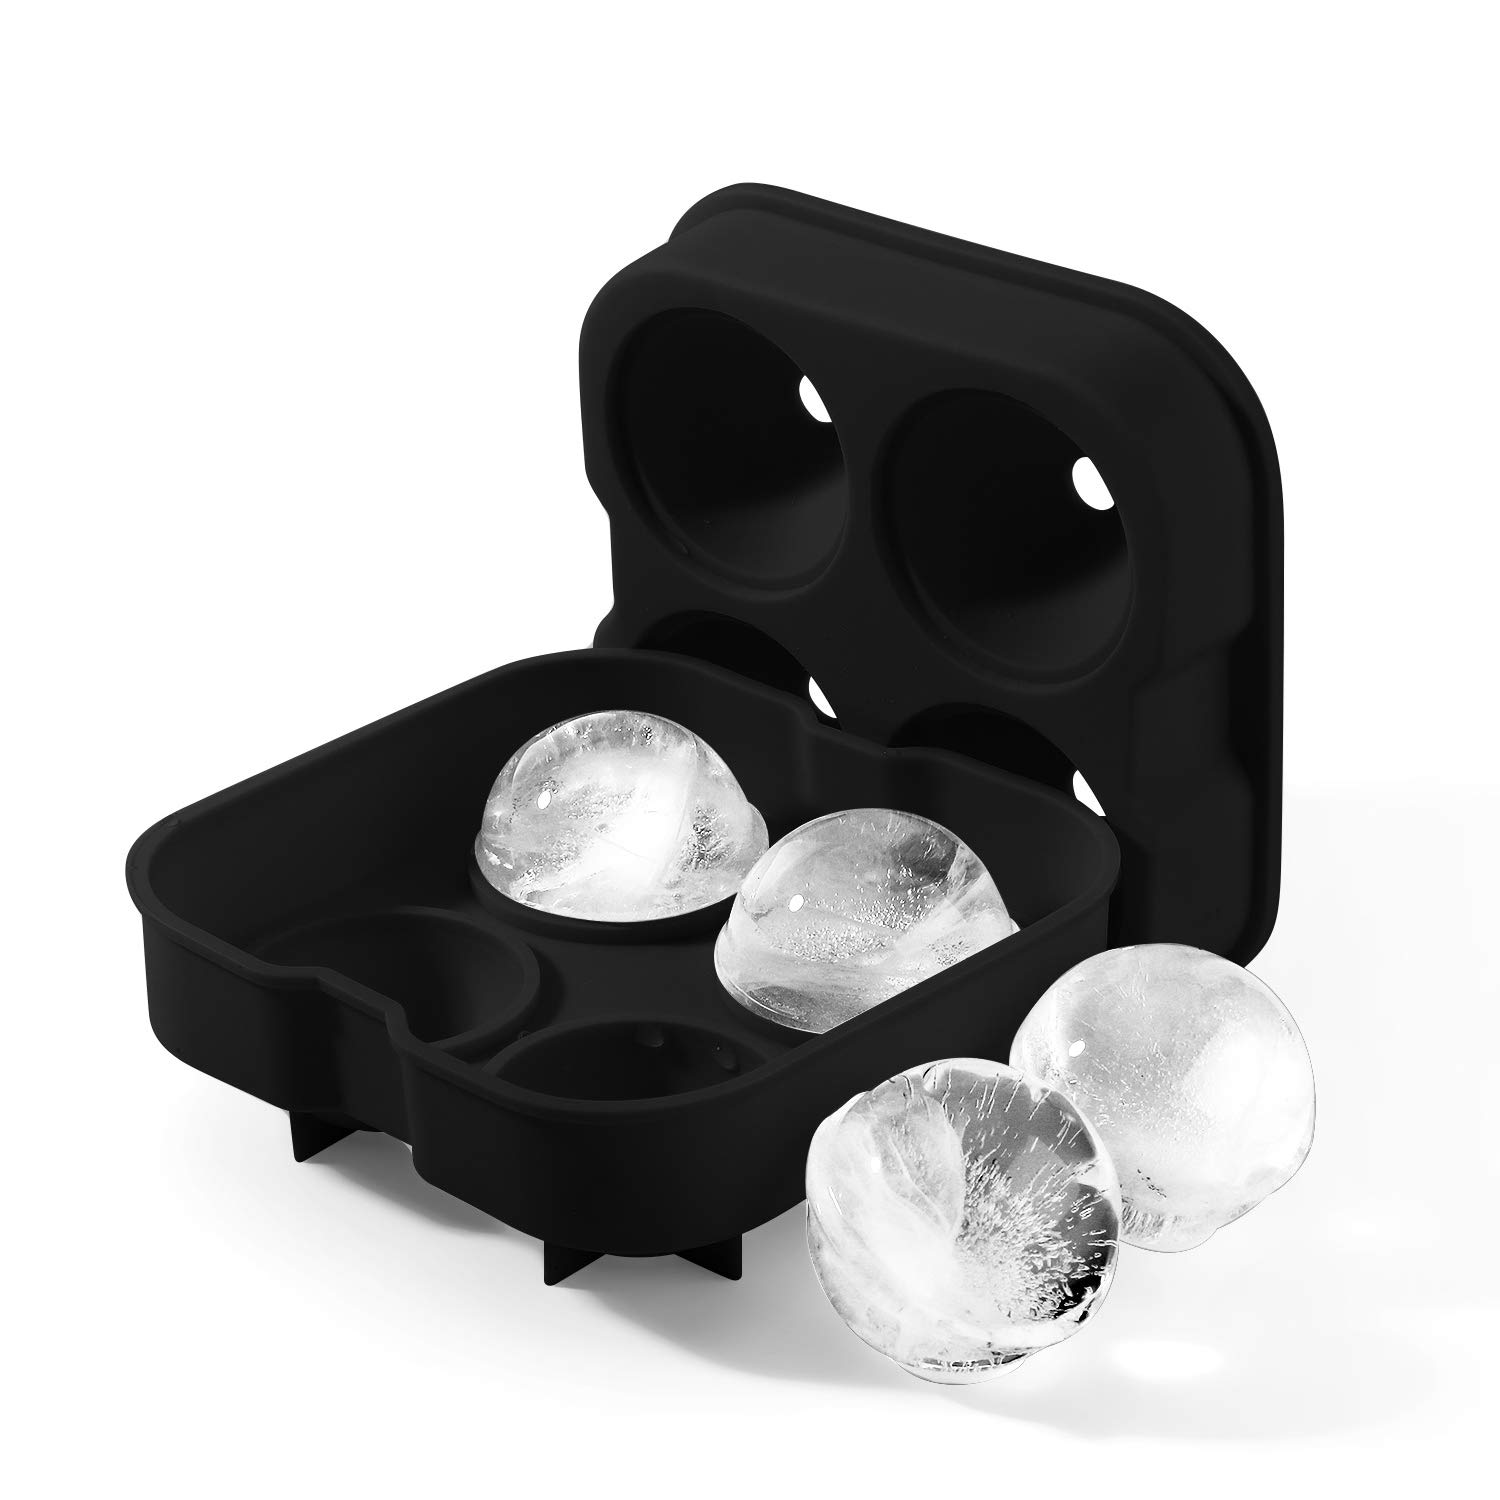 Flexible Silicone Mold with Lids for 1.8 Large Ice Sphere Mold for Whiskey Chilling Bourbon Cocktail Beverages Round Ice Spheres Ice Cube Tray Mold for Whiskey Flexzion Ice Ball Mold Maker